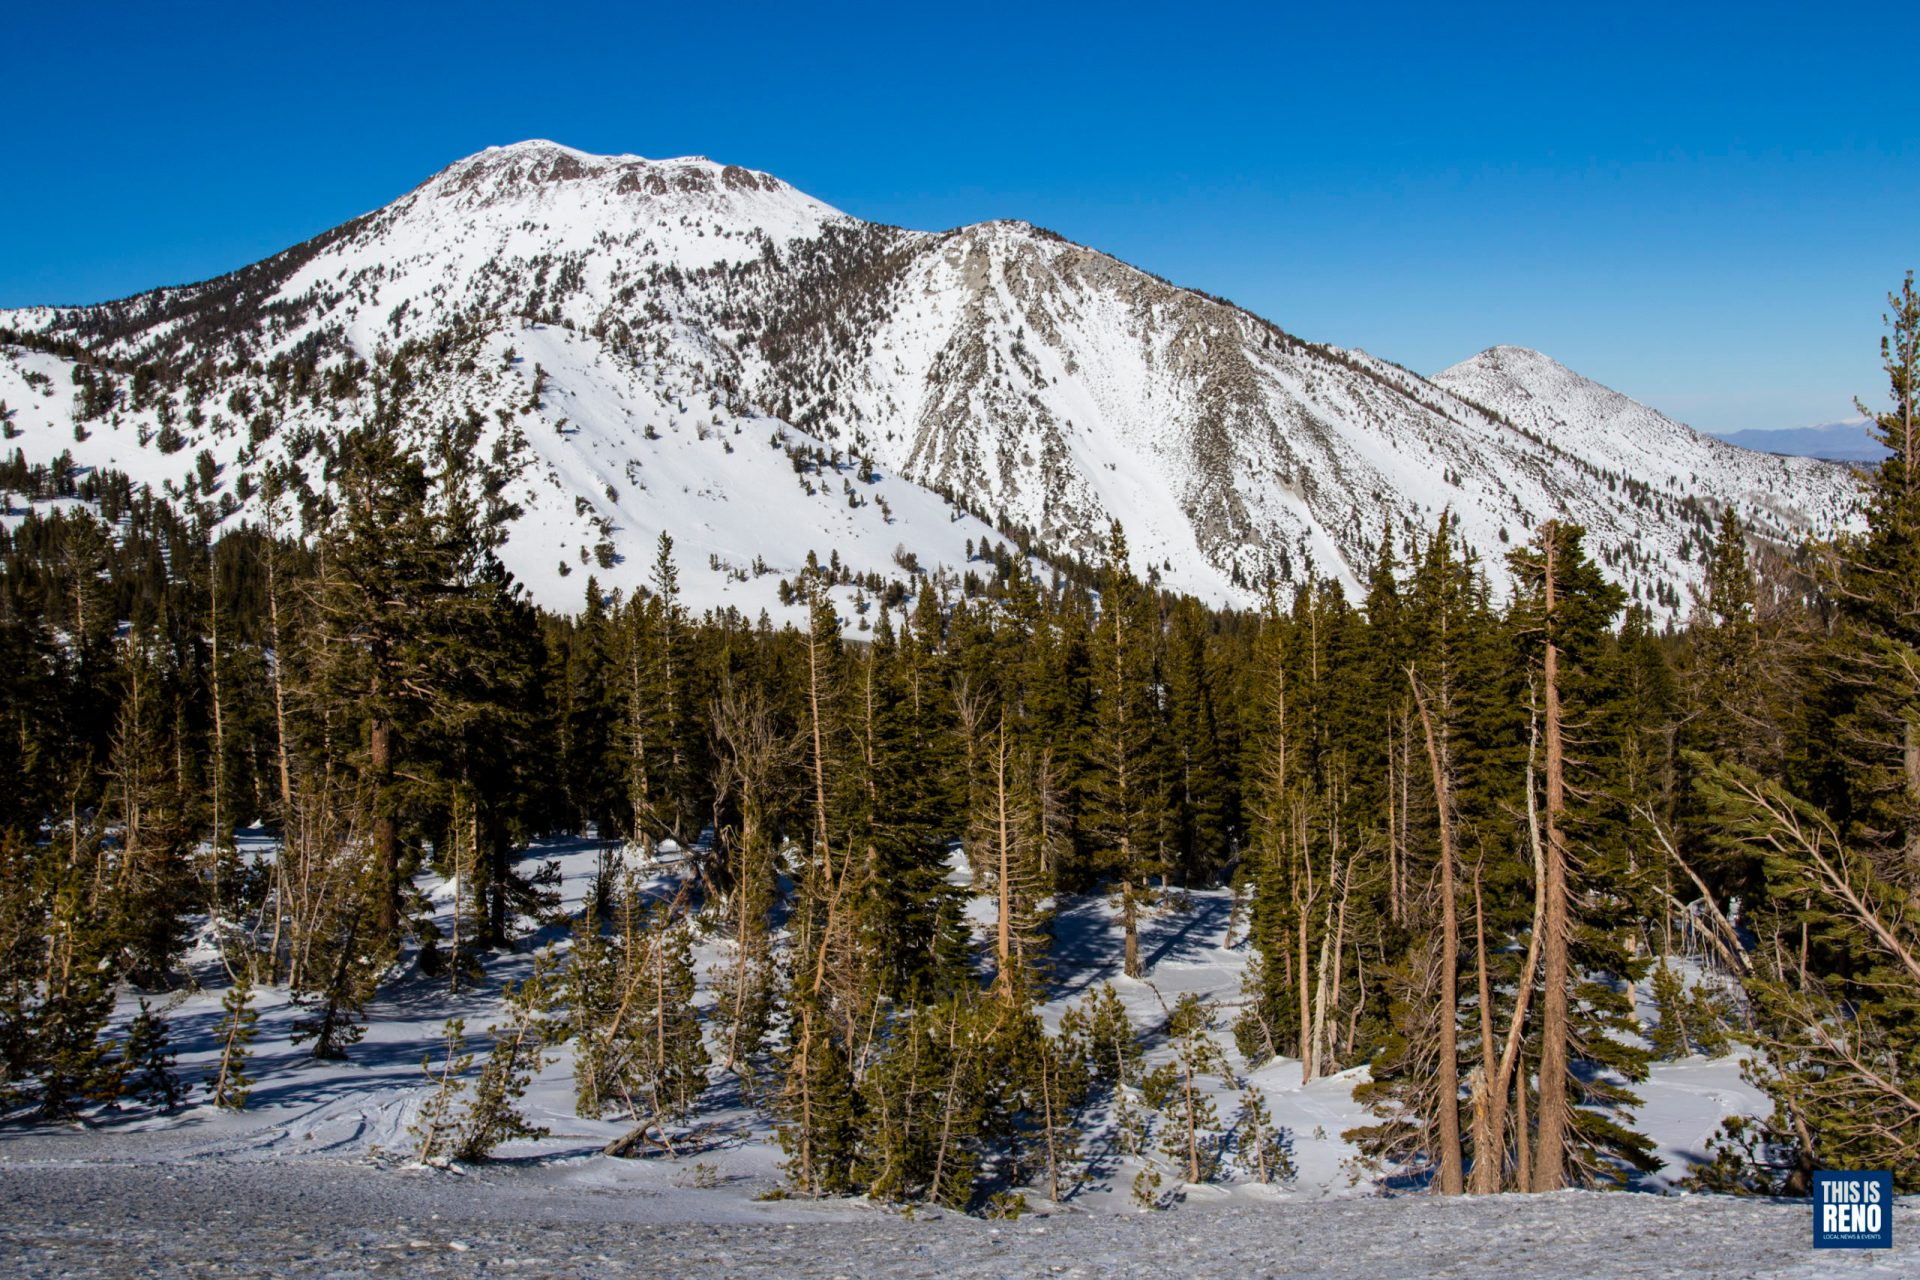 The Sierra snowpack in January 2020. Image: Ty O'Neil